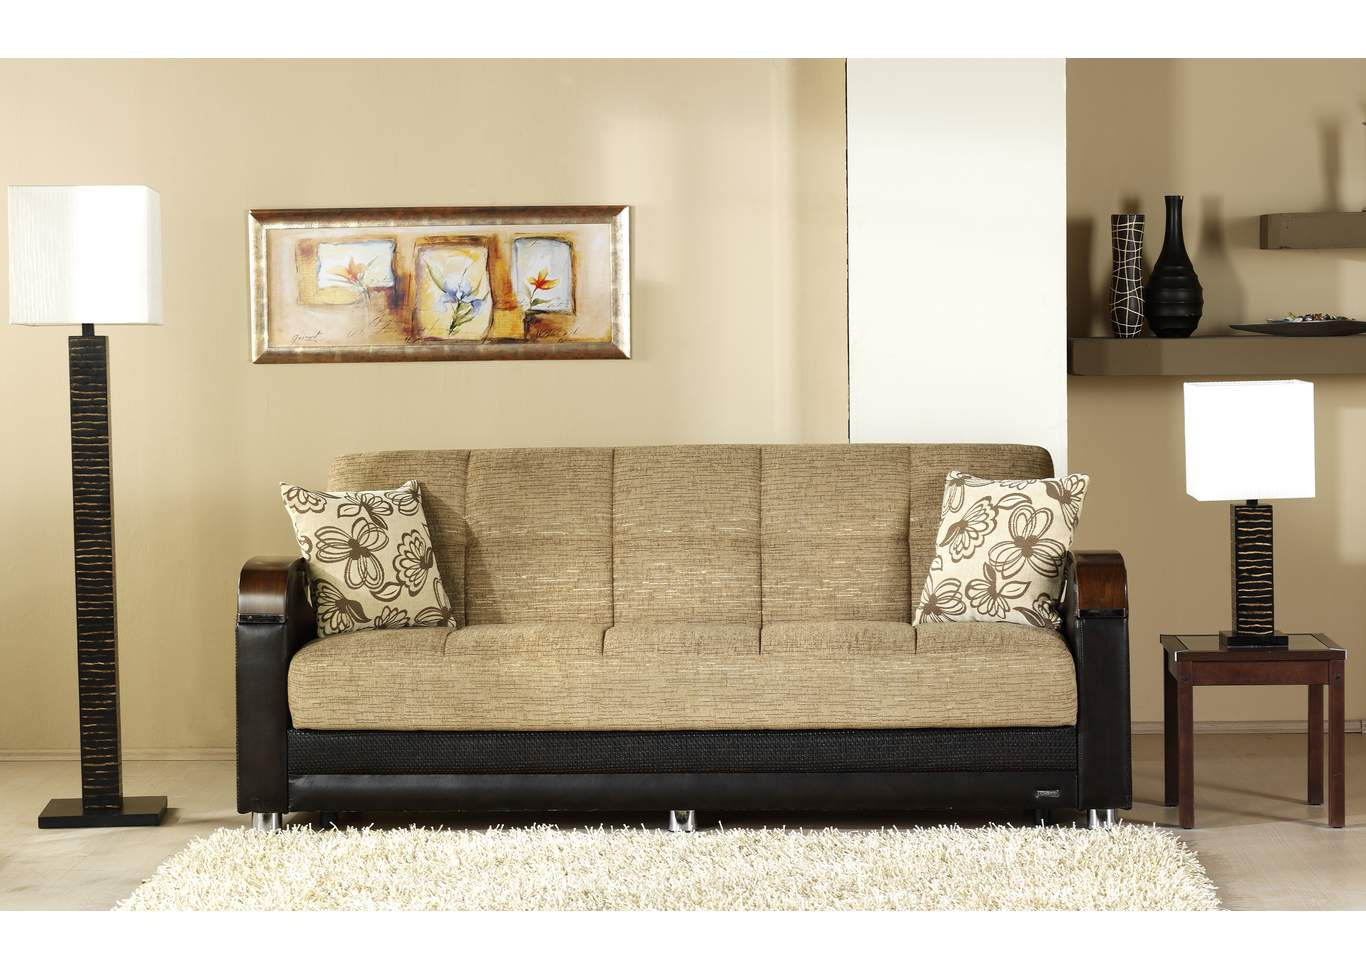 Luna Fulya Brown 3 Seat Sleeper Sofa,Hudson Furniture & Bedding